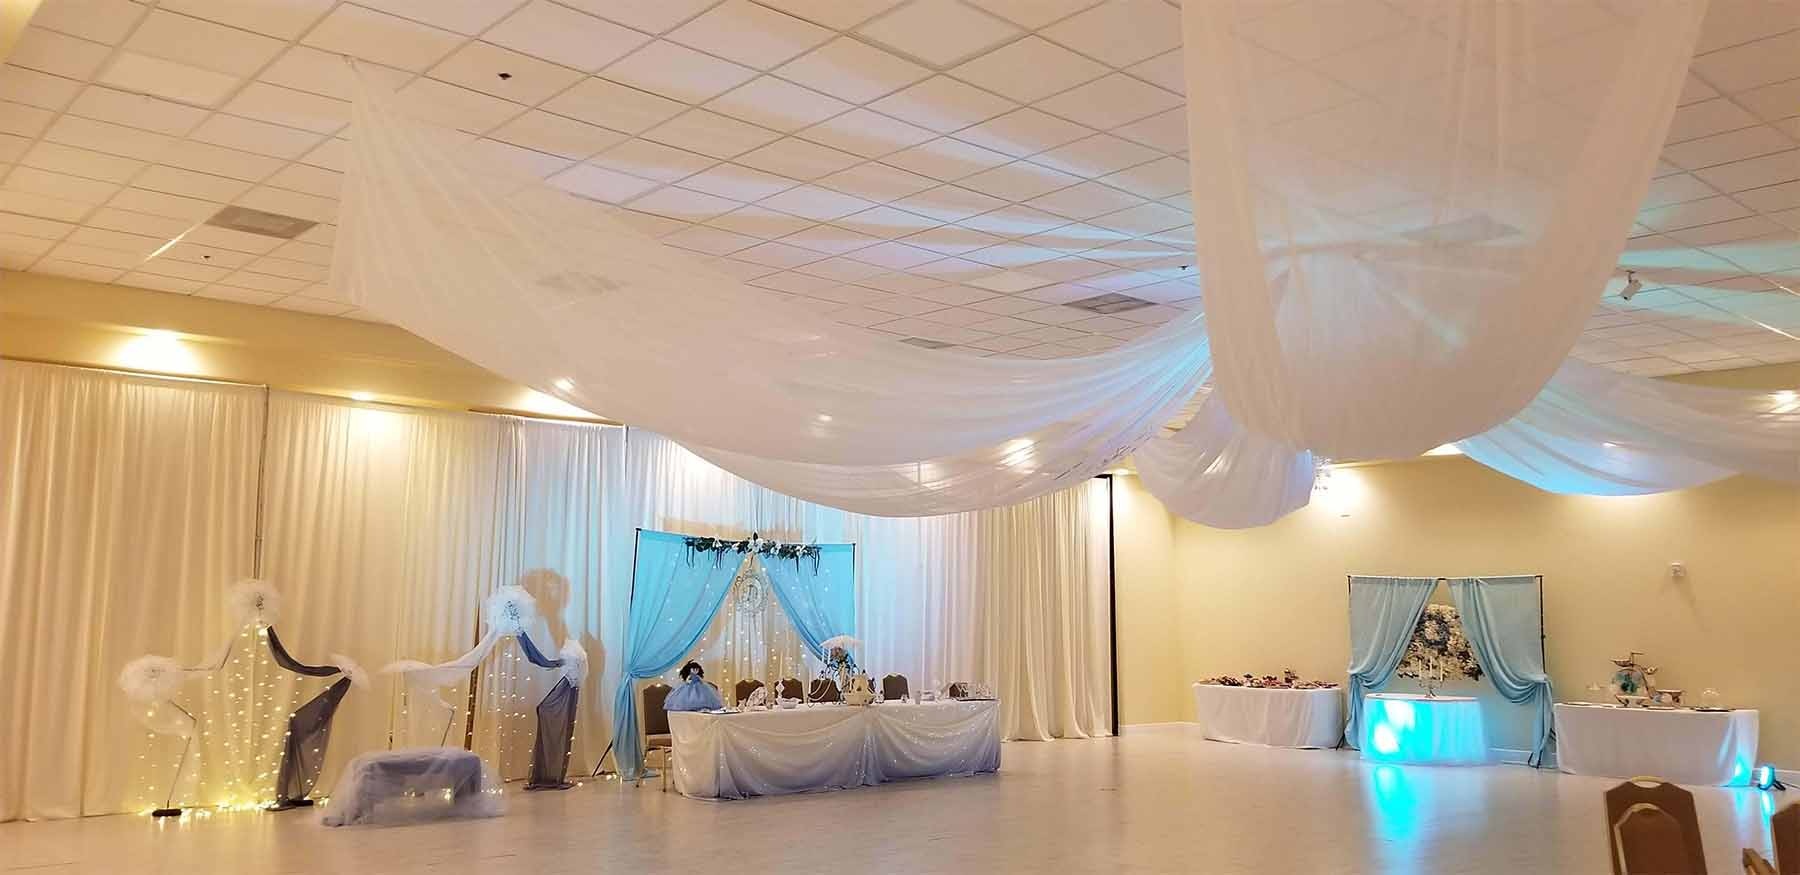 Banquets, wedding, wedding venue ,banquet halls, banquet hall in Tampa, Reception, Reception hall , Birthday Parties